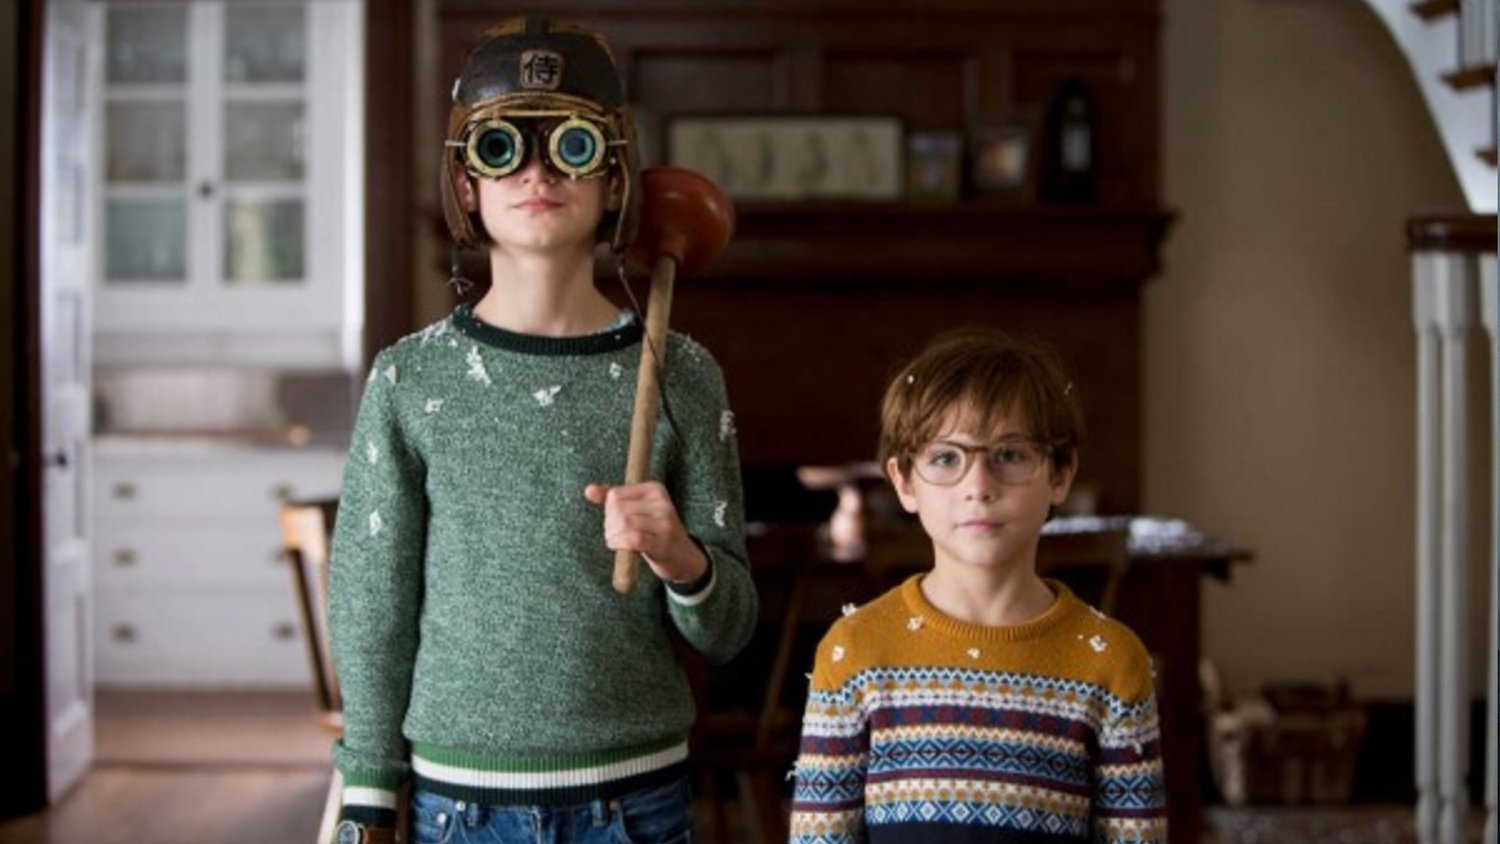 Intense Trailer for the Fantastic-Looking Adventure Thriller THE BOOK OF HENRY